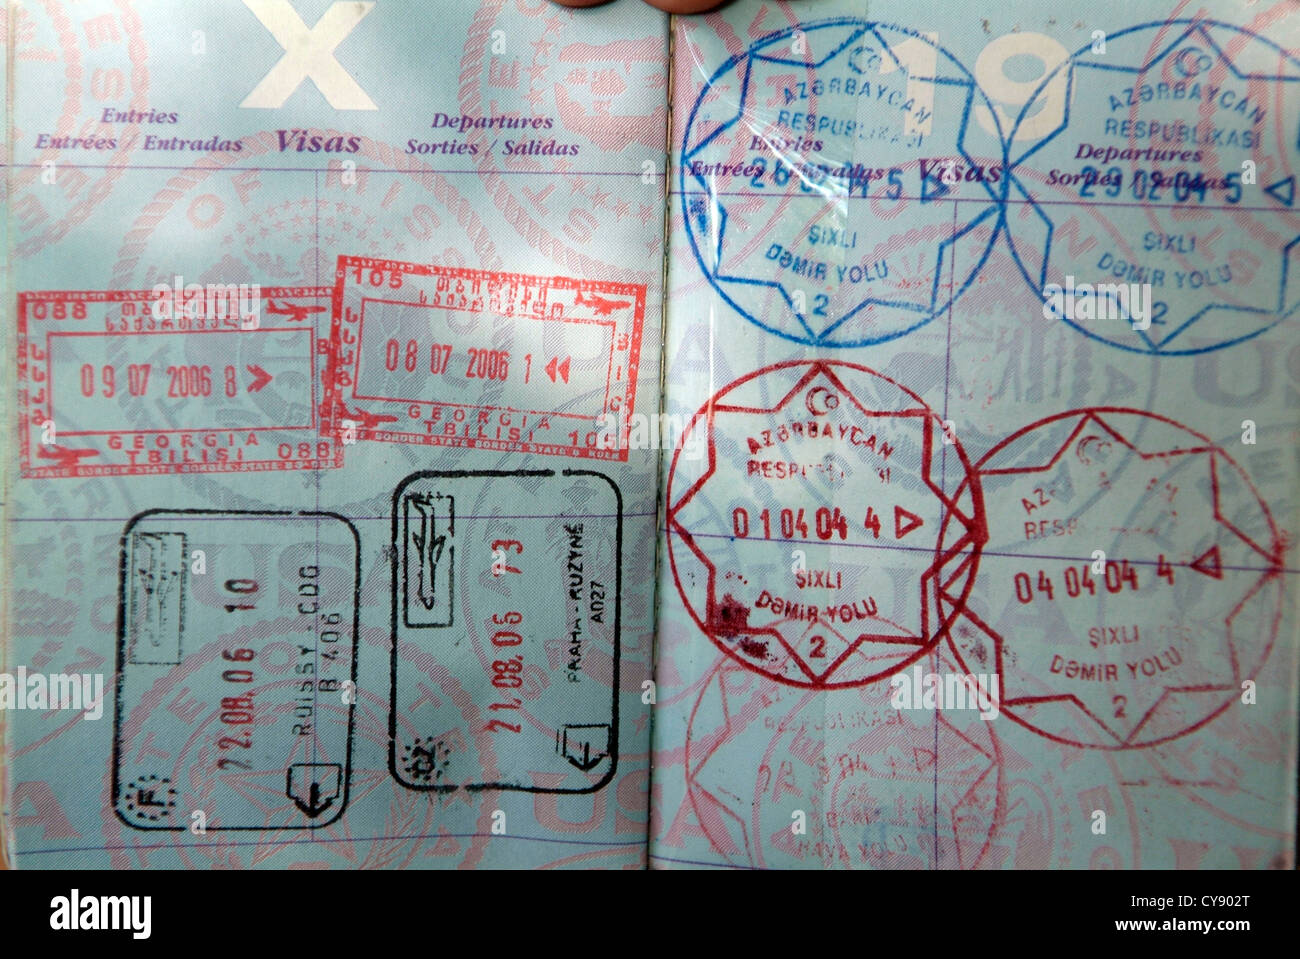 US PASSPORT open at pages showing visa stamps - Stock Image